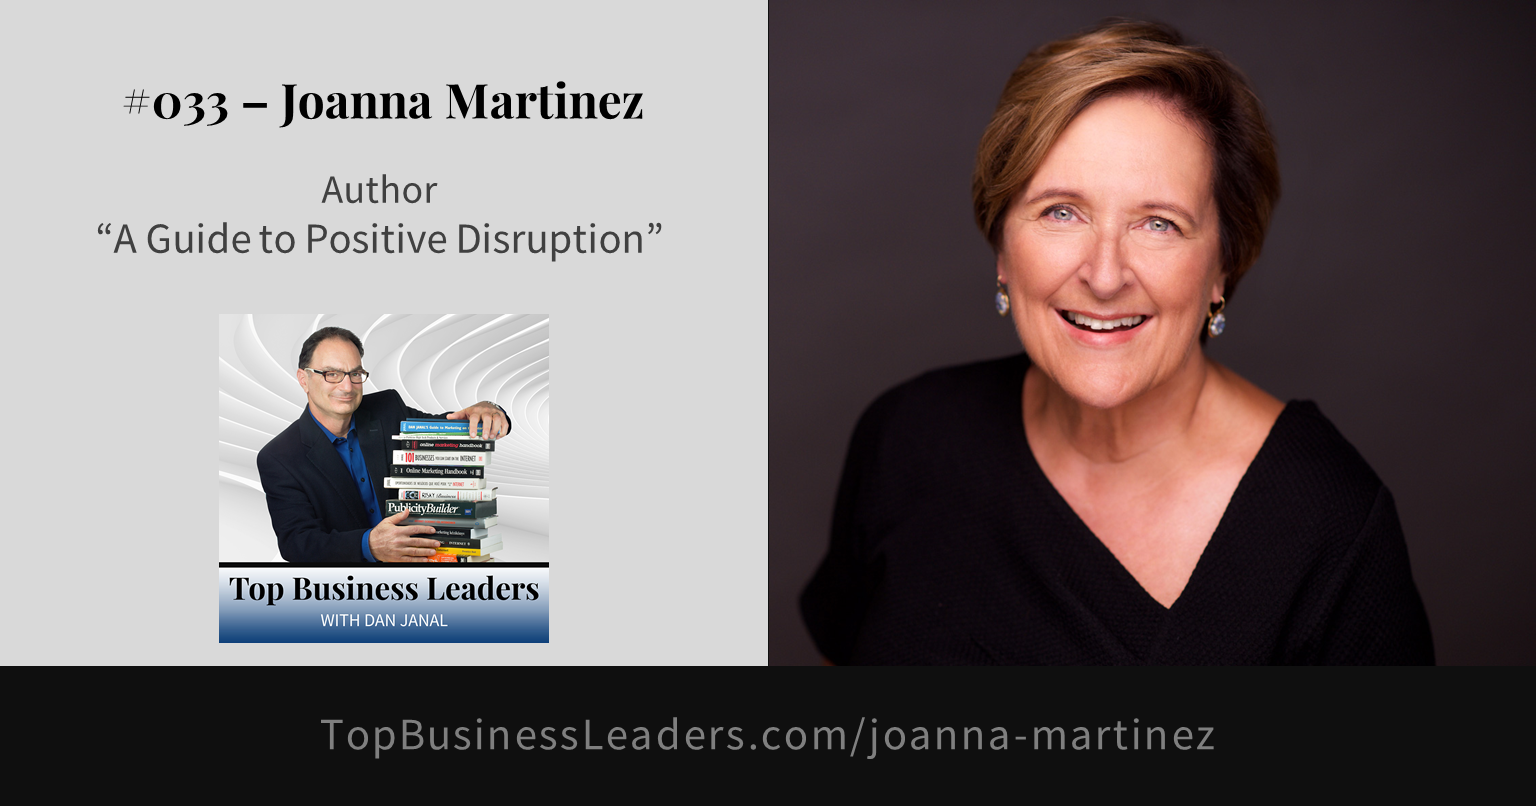 joanna-martinez-author-a-guide-to-positive-disruption